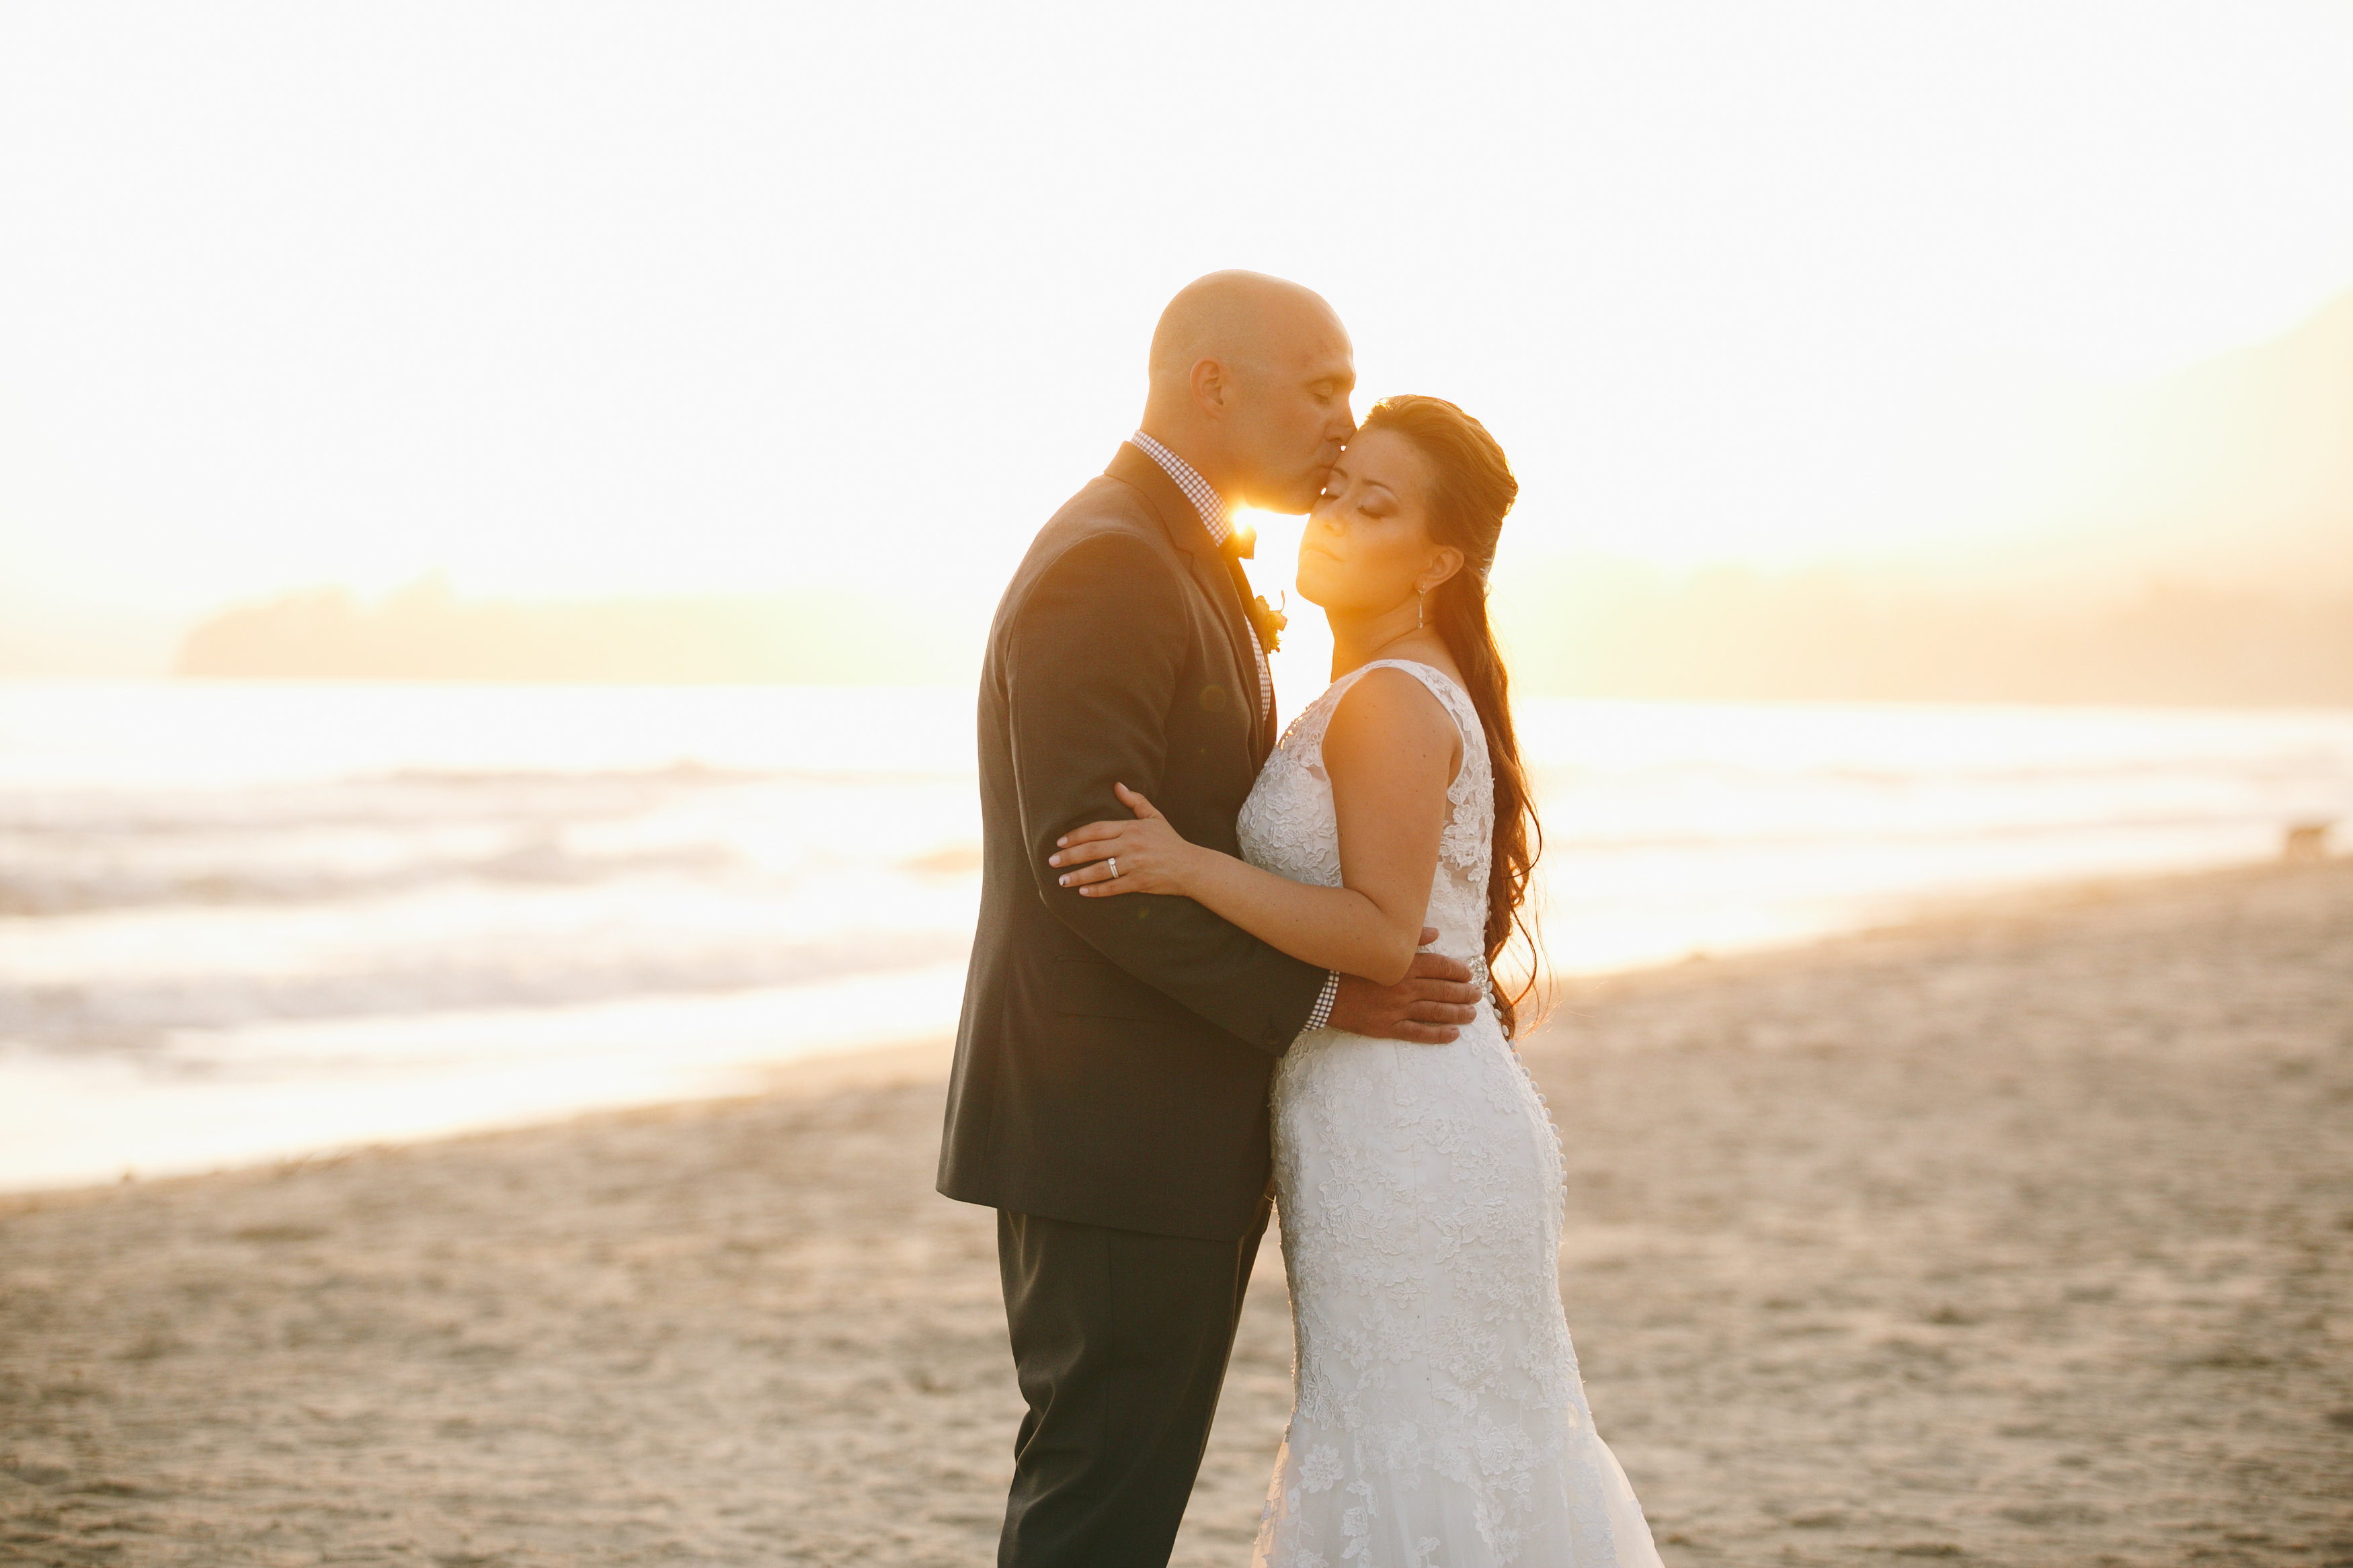 Vintage beach wedding in Carpenteria